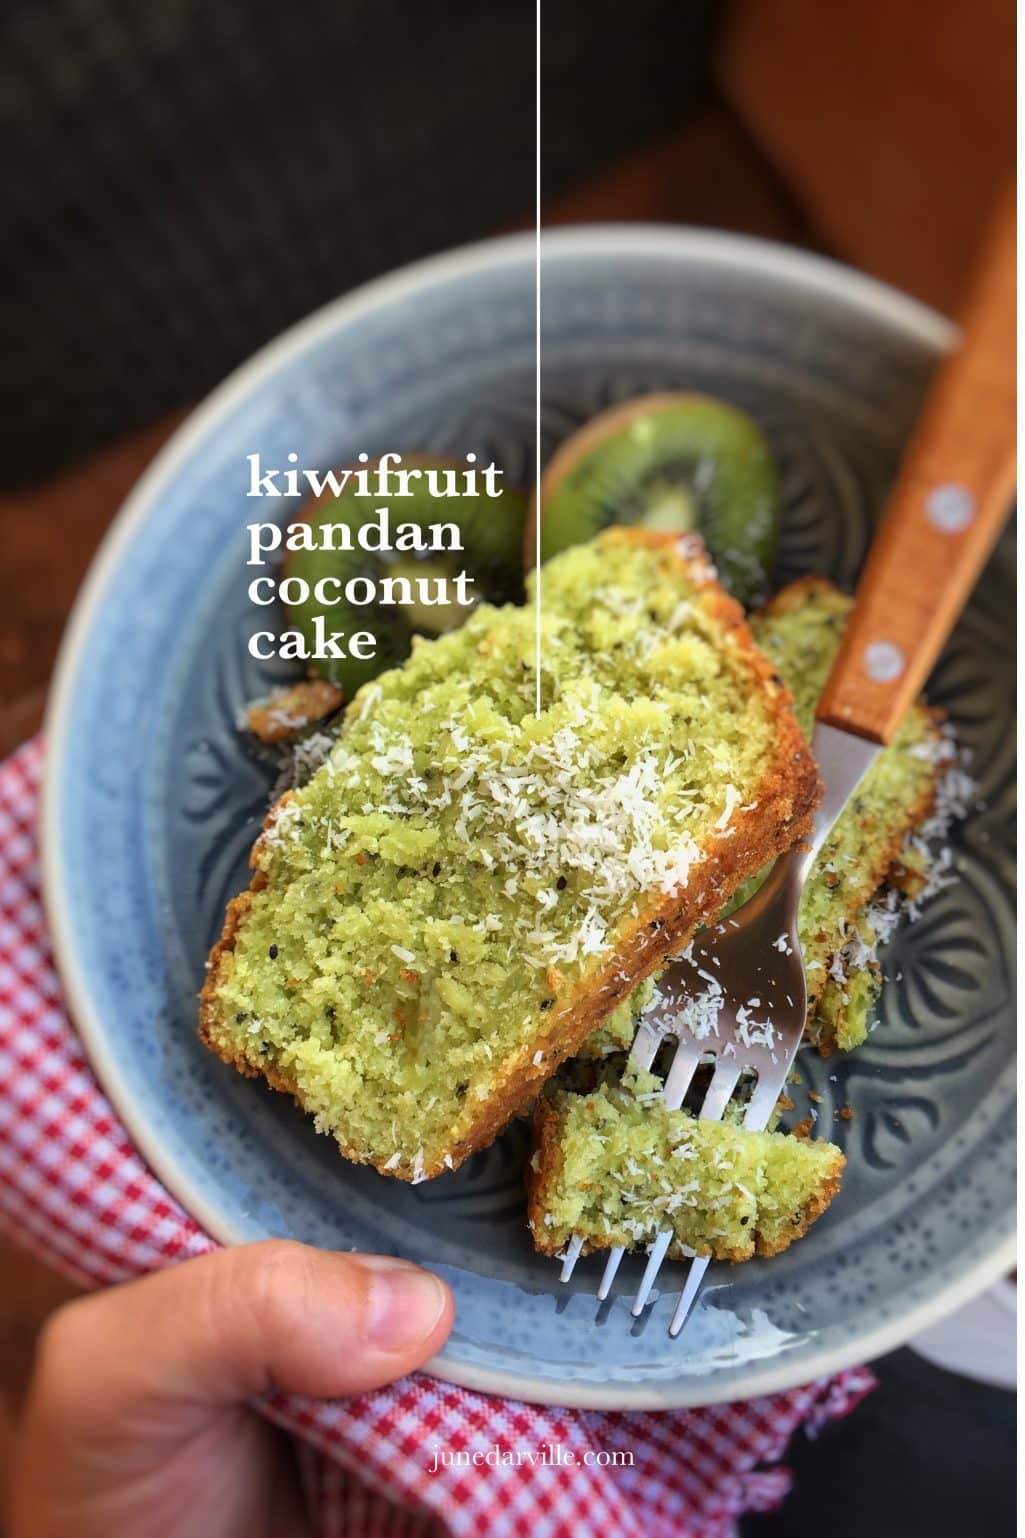 What a fluffy tea cake: this kiwifruit cake with pandan and grated coconut is so delicious! And addictive... didn't last for 24 hours!